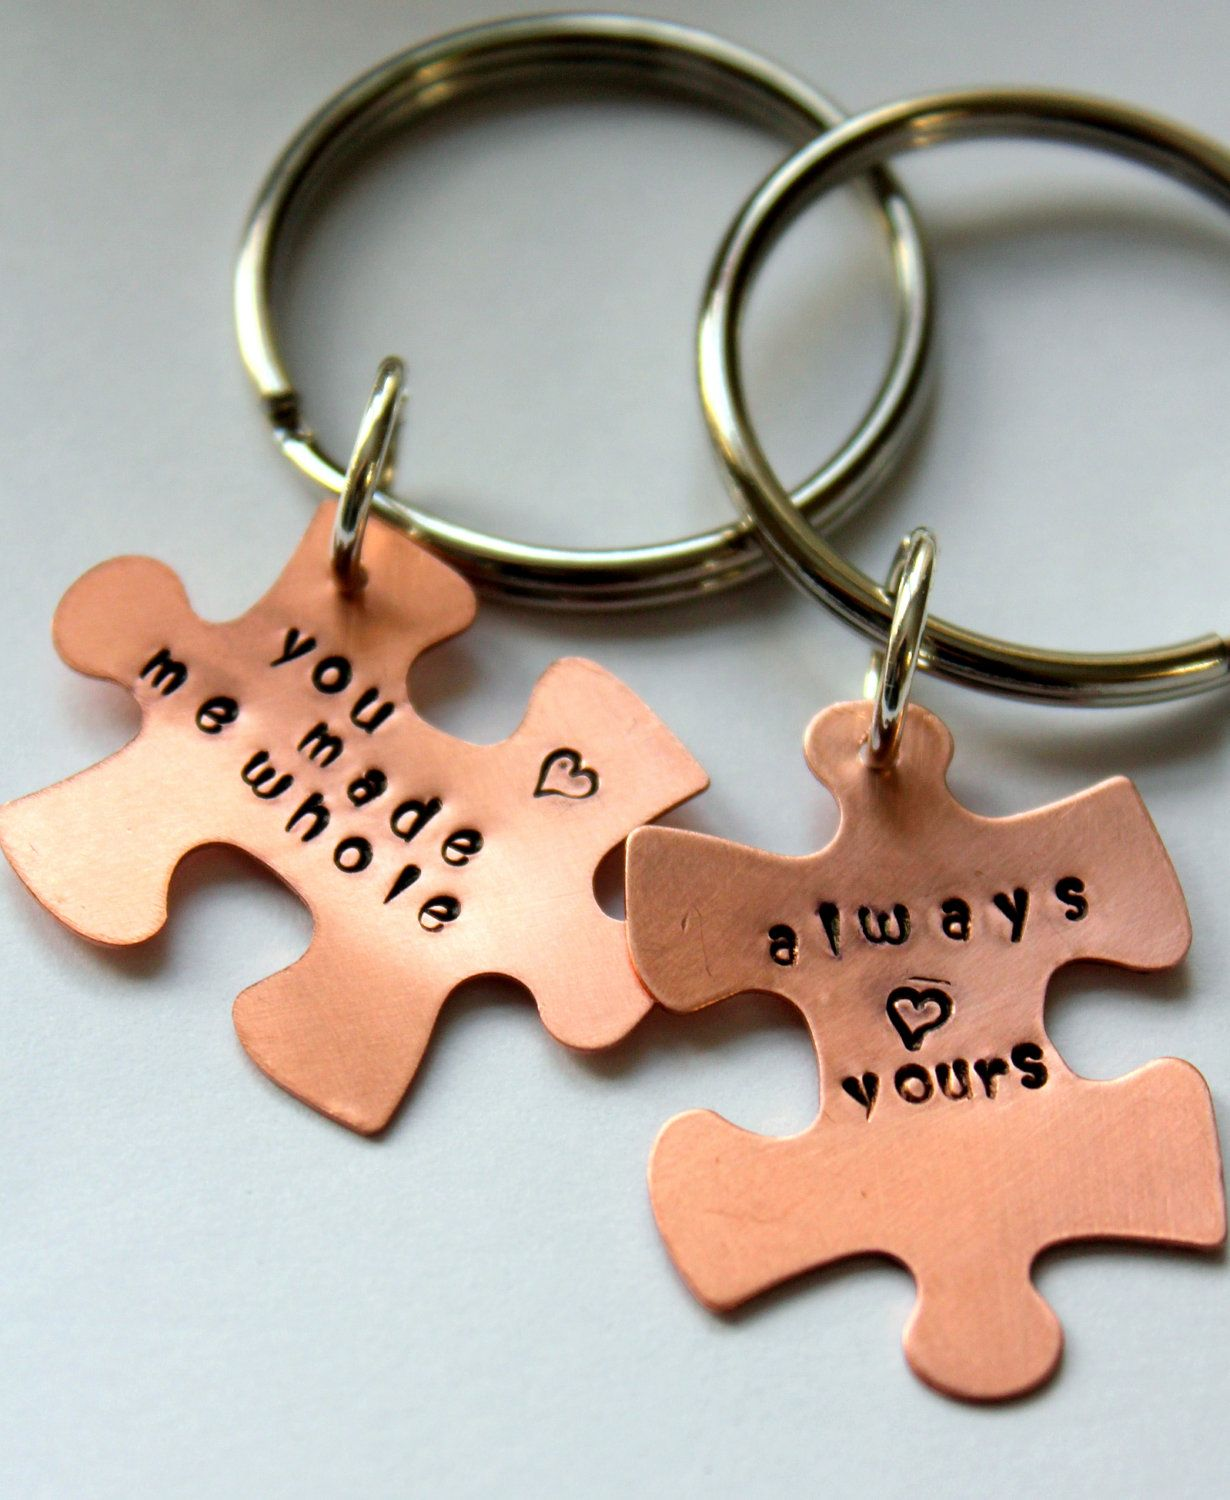 Puzzle Piece Keychain Valentines For Him Puzzle Piece Keychain